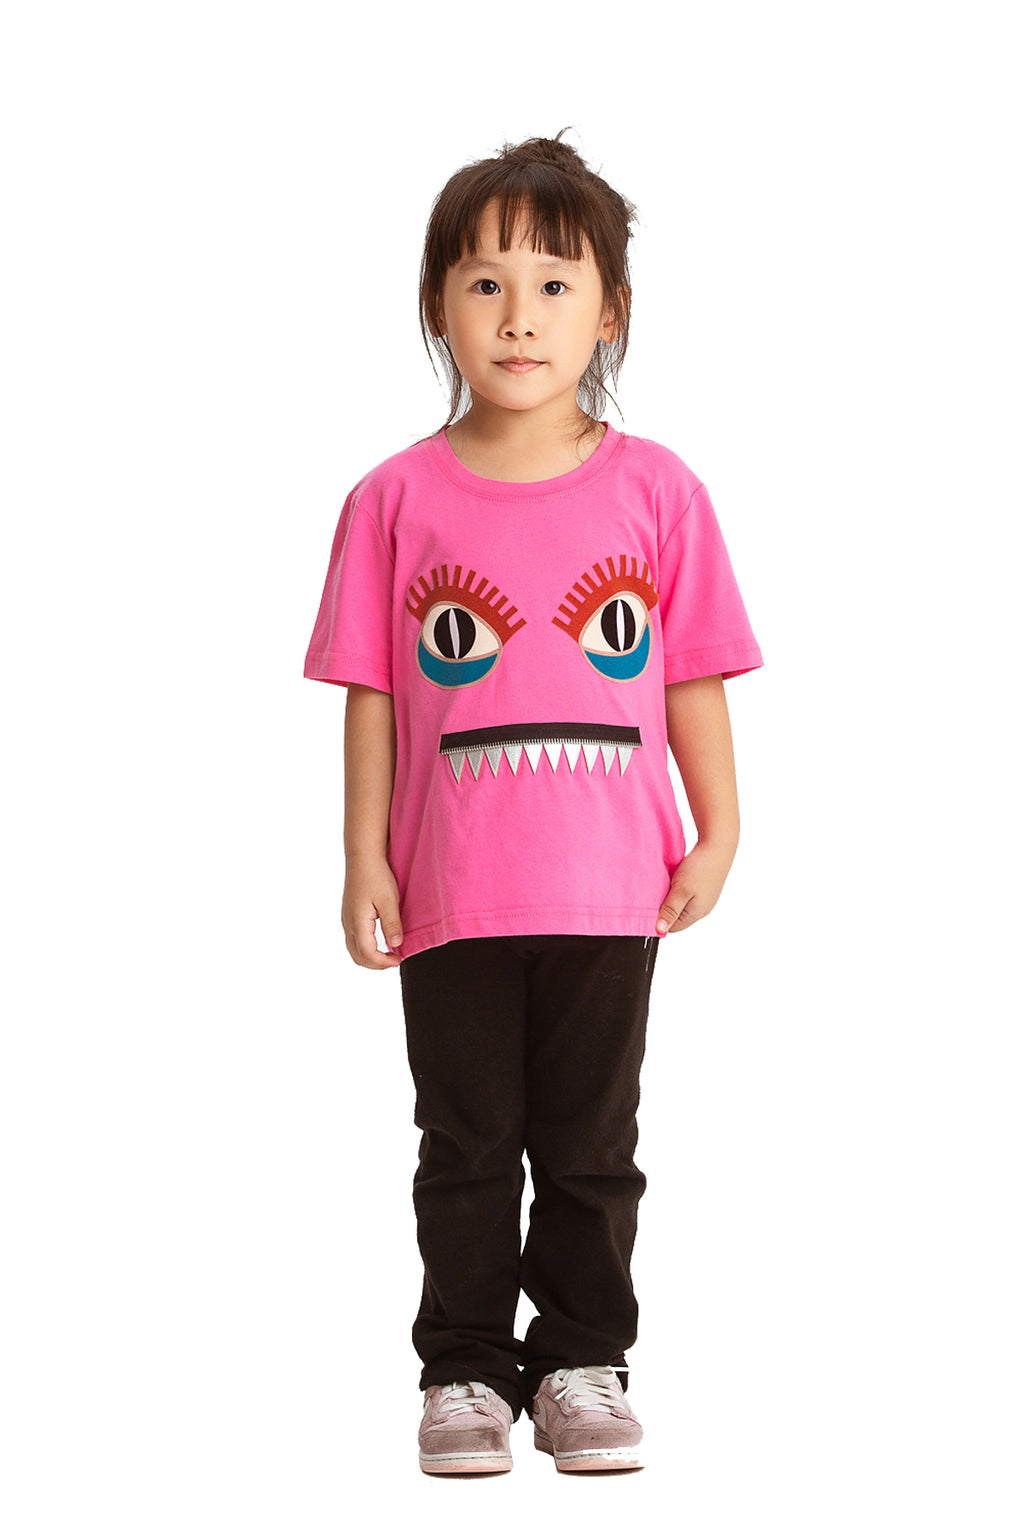 Little Mons T-Shirt for Kids - Pink